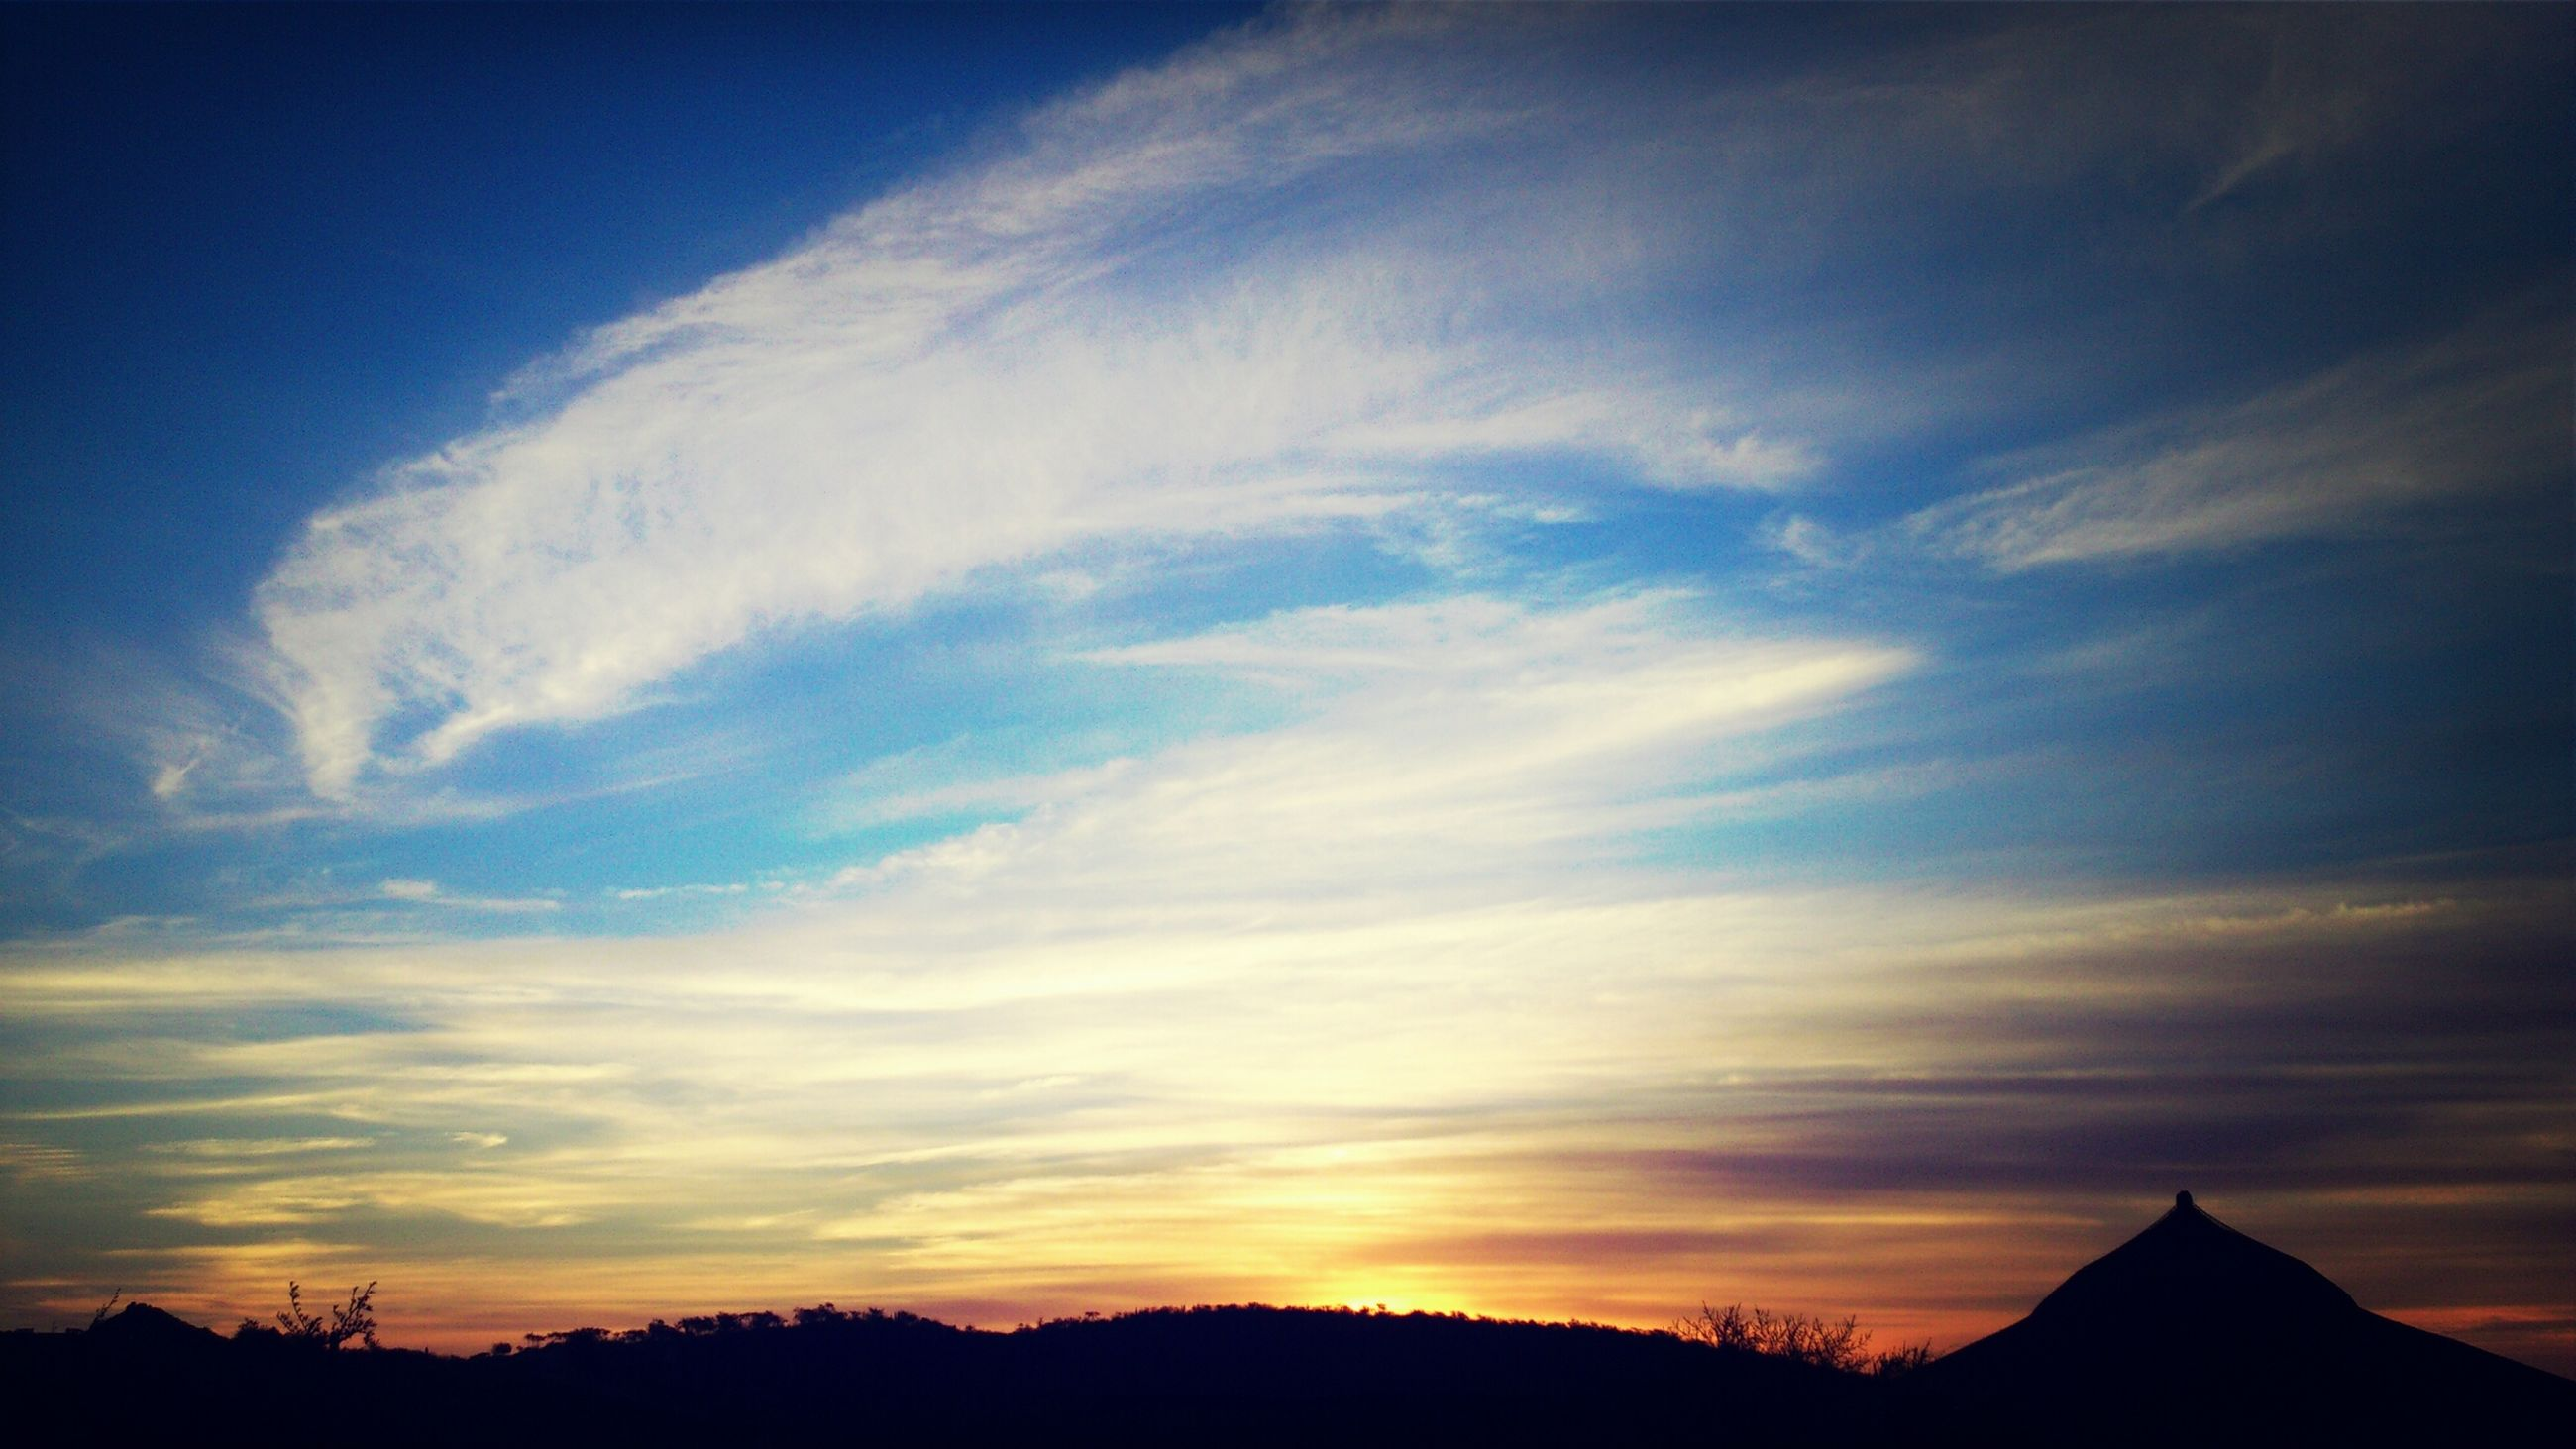 silhouette, sky, sunset, beauty in nature, scenics, tranquil scene, tranquility, nature, cloud - sky, low angle view, cloud, idyllic, mountain, dusk, outdoors, landscape, blue, majestic, no people, tree